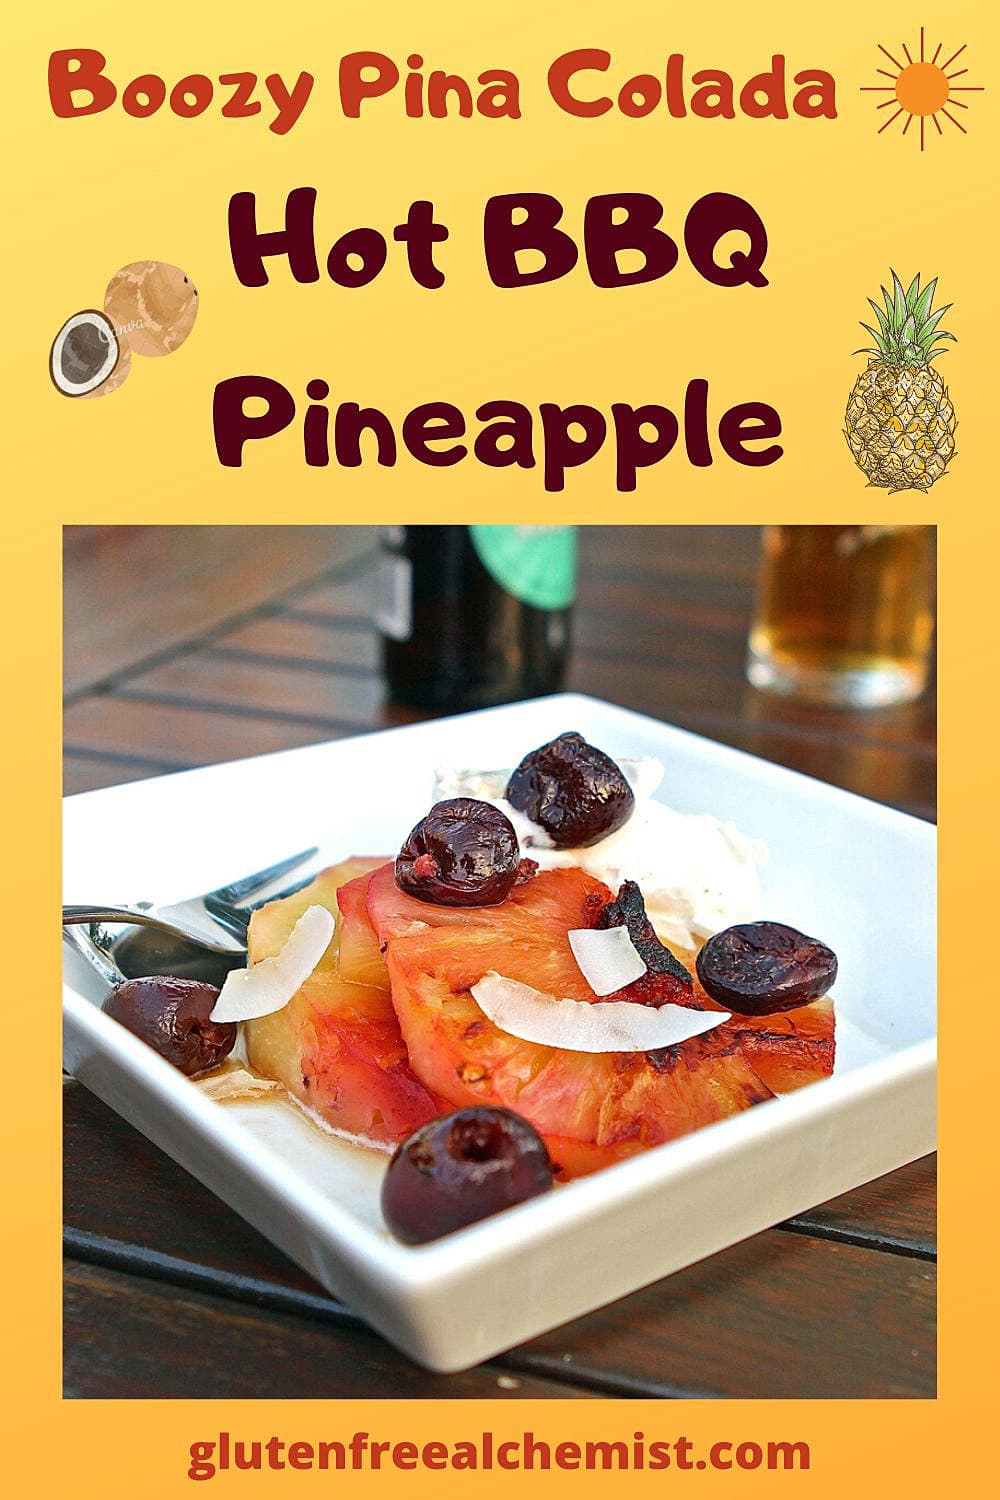 Pina Colada BBQ Pineapple – Hot Pineapple with a Boozy Twist